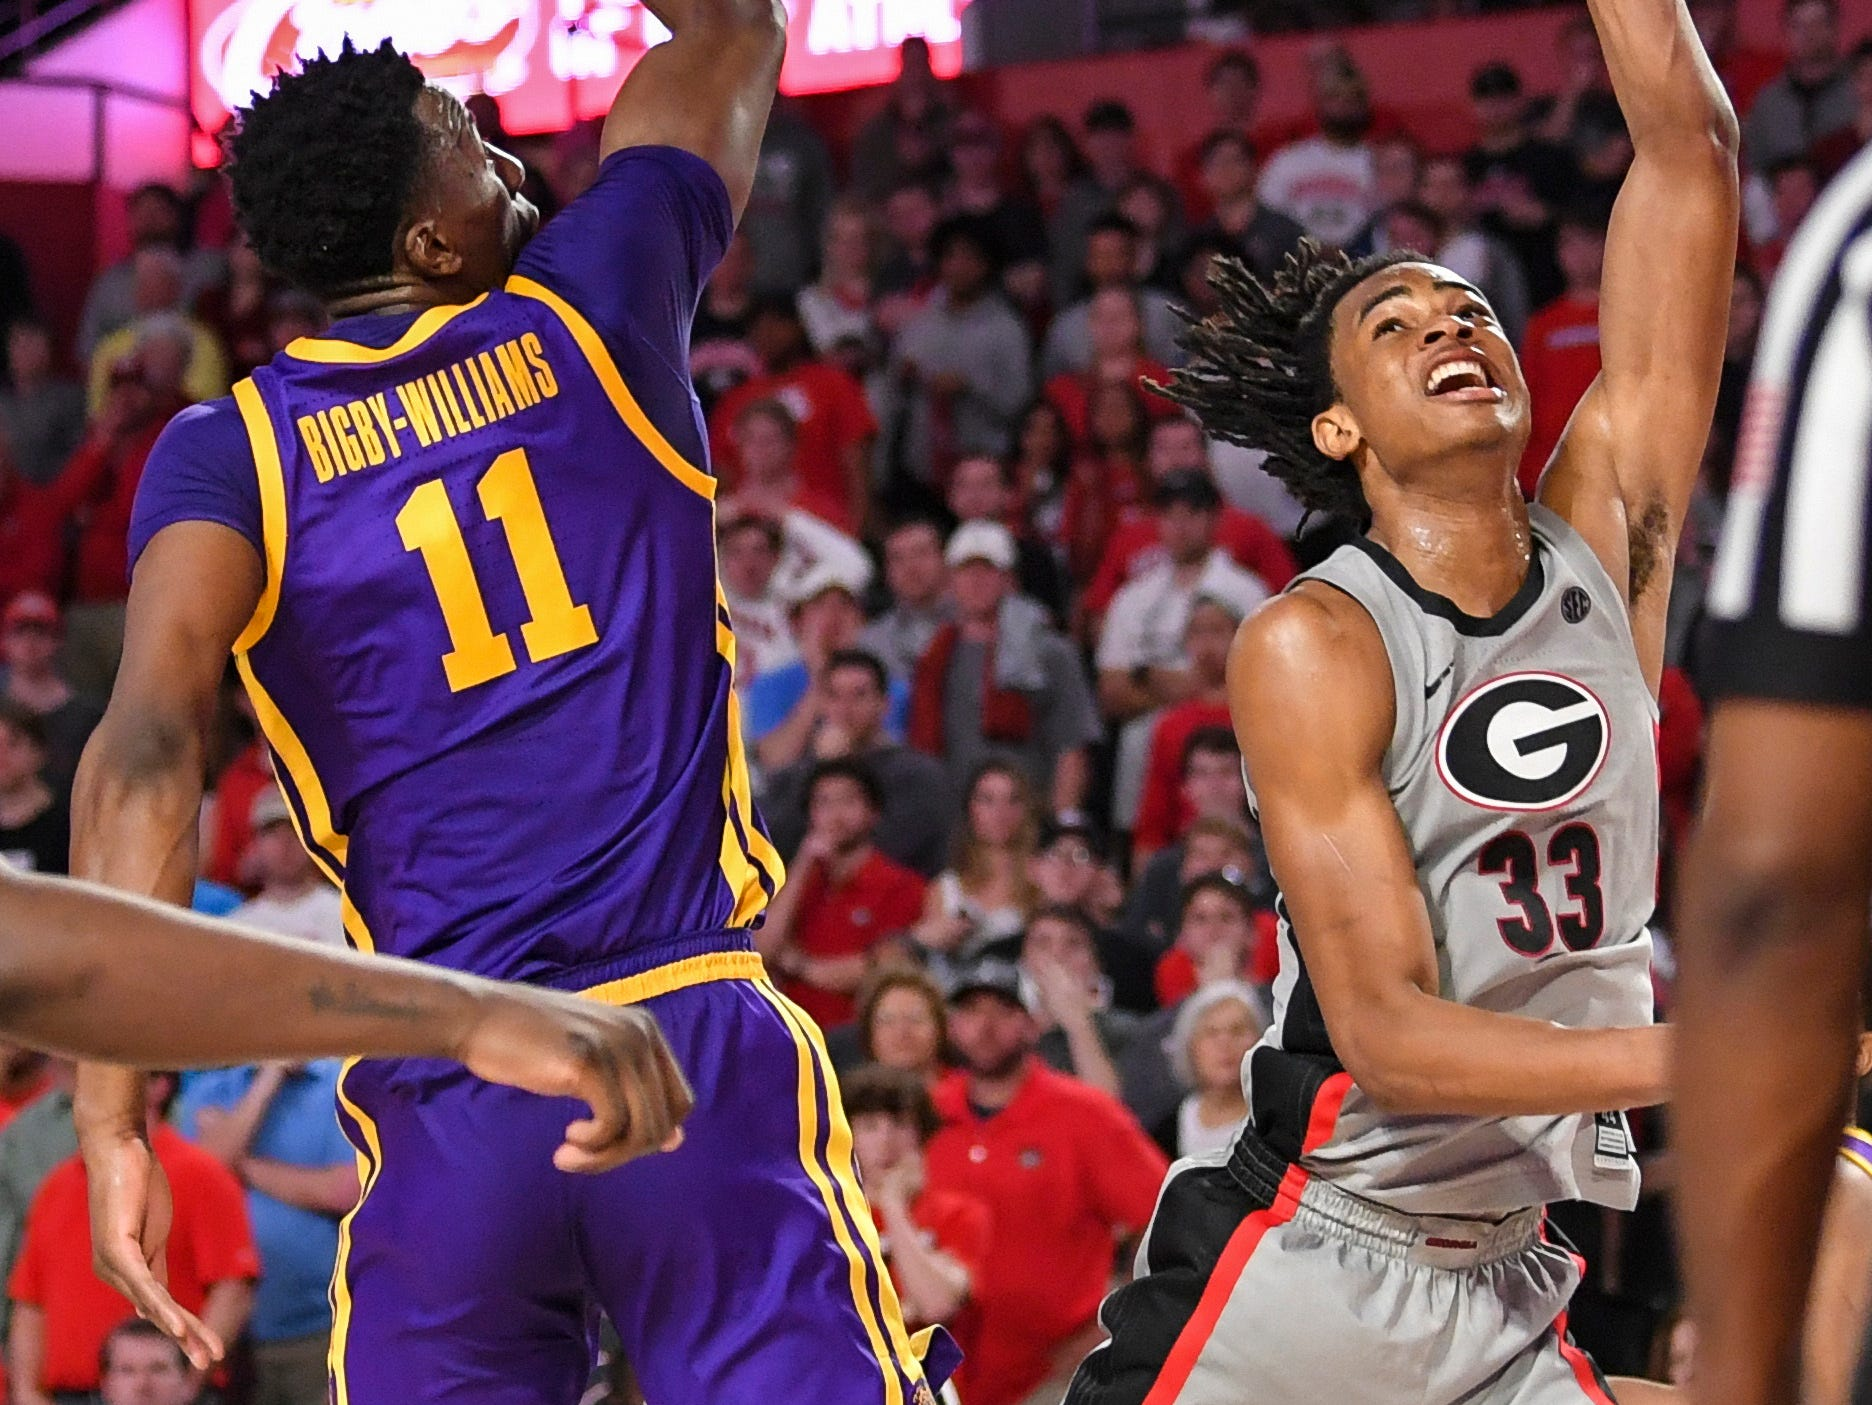 Feb 16, 2019; Athens, GA, USA; Georgia Bulldogs forward Nicolas Claxton (33) shoots against LSU Tigers forward Kavell Bigby-Williams (11) during the second half at Stegeman Coliseum. Mandatory Credit: Dale Zanine-USA TODAY Sports